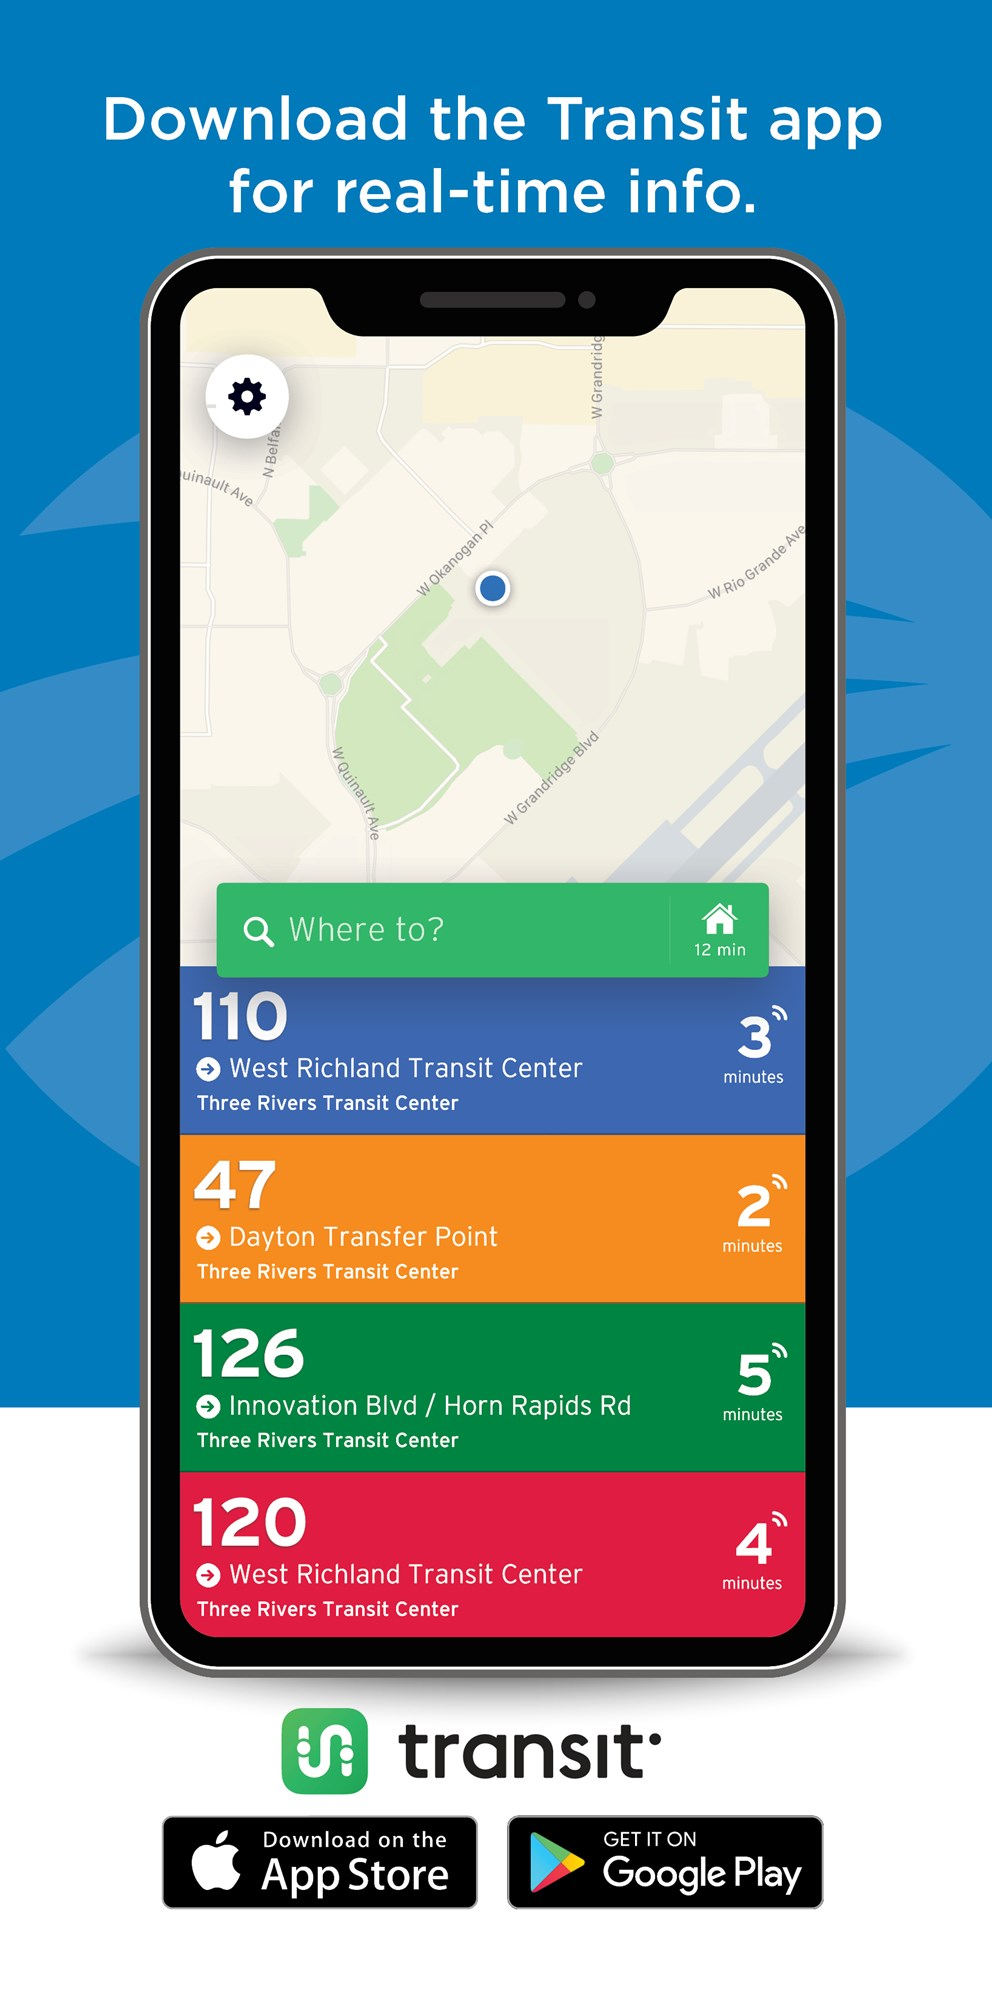 Transit_App_and_Route_Update_Sign_DRAFT__v3_Rev_2-5-2020